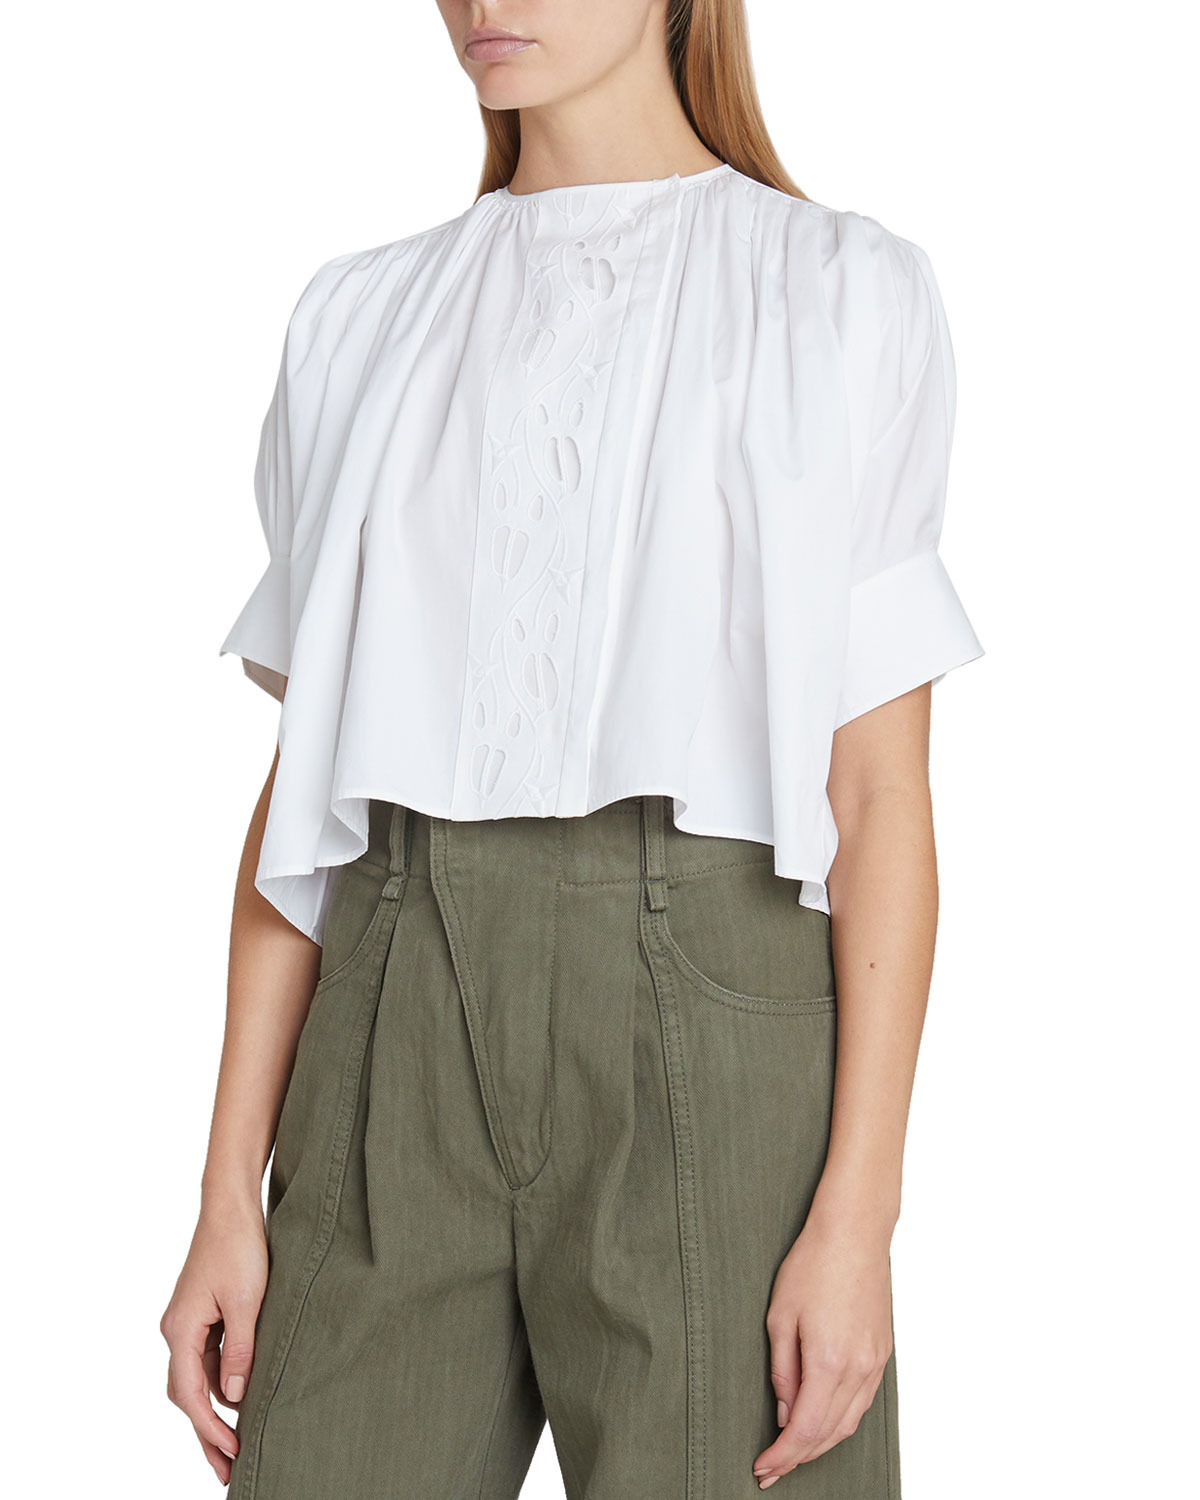 Chloé Cottons EYELET-PANELED COTTON CROPPED BLOUSE